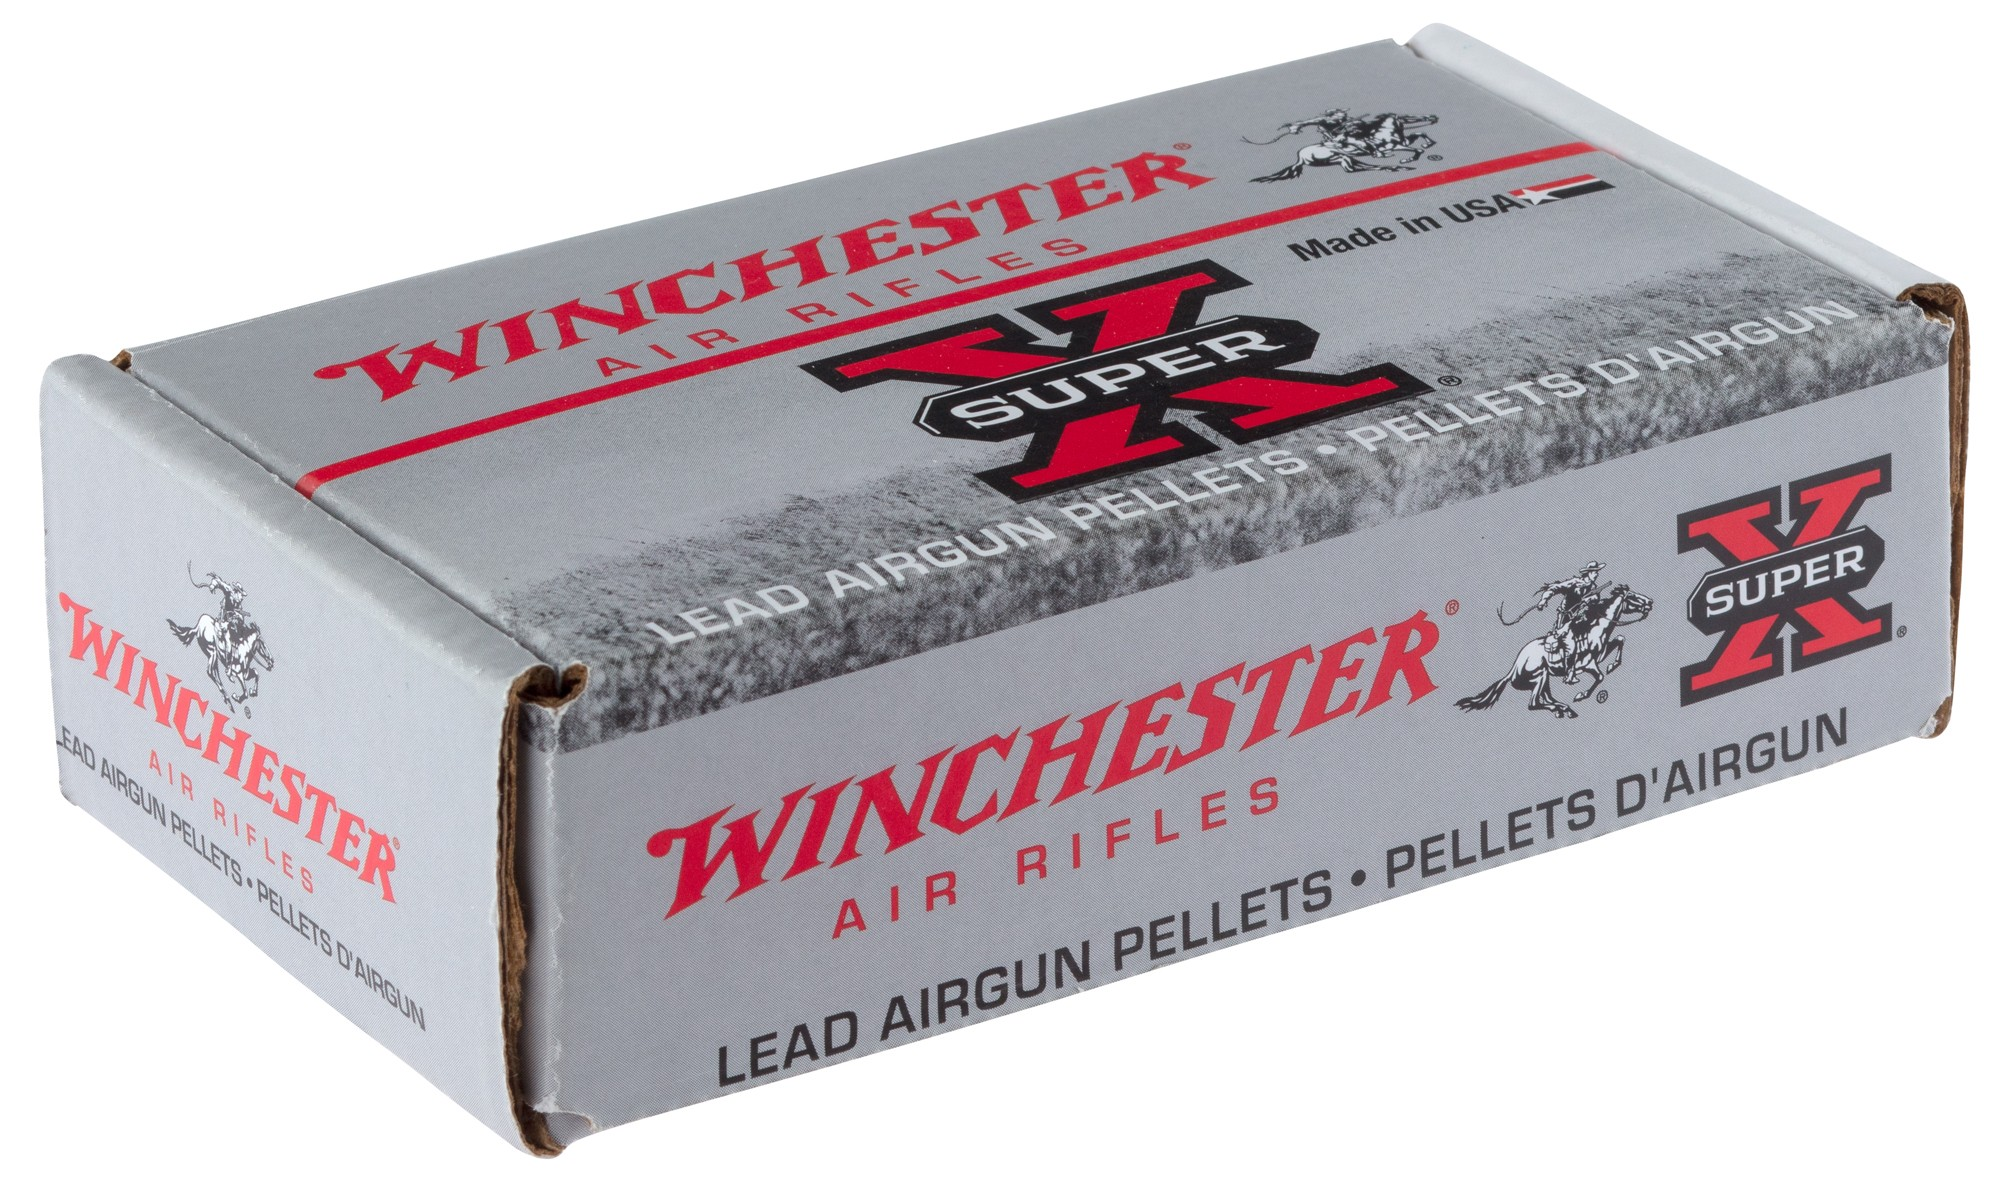 G3860-6 Plombs Winchester 9mm HP pour air comprimé - G3860